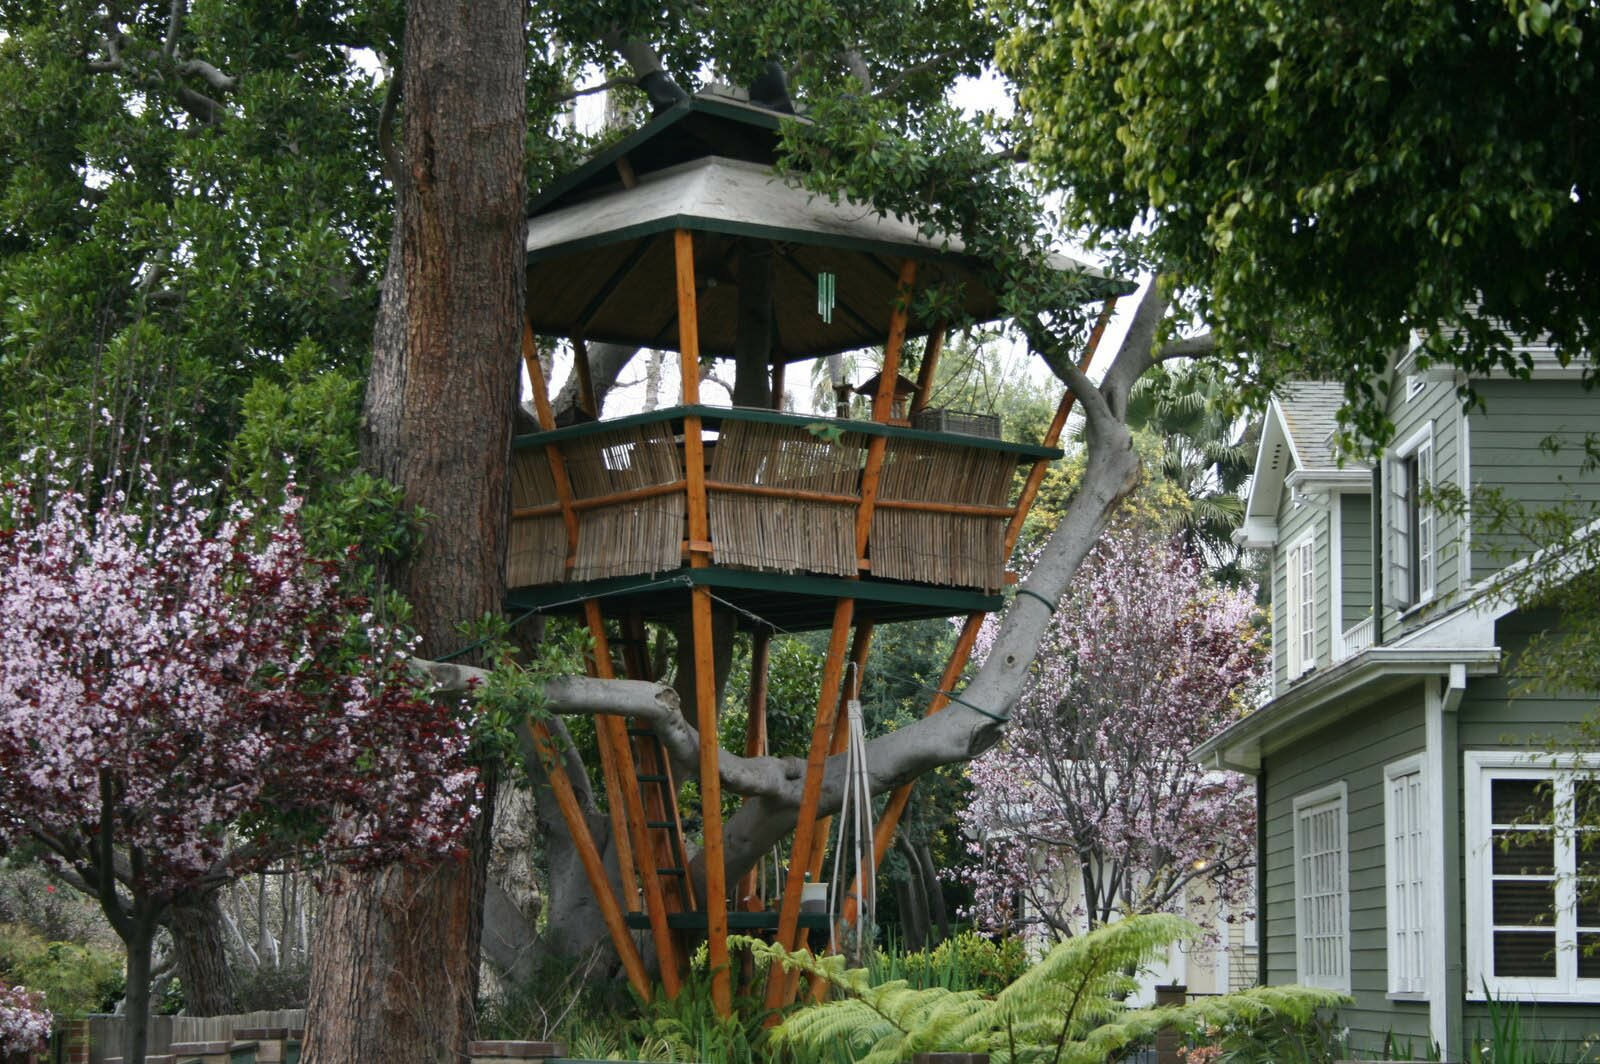 18 amazing tree house designs mostbeautifulthings for Amazing house designs